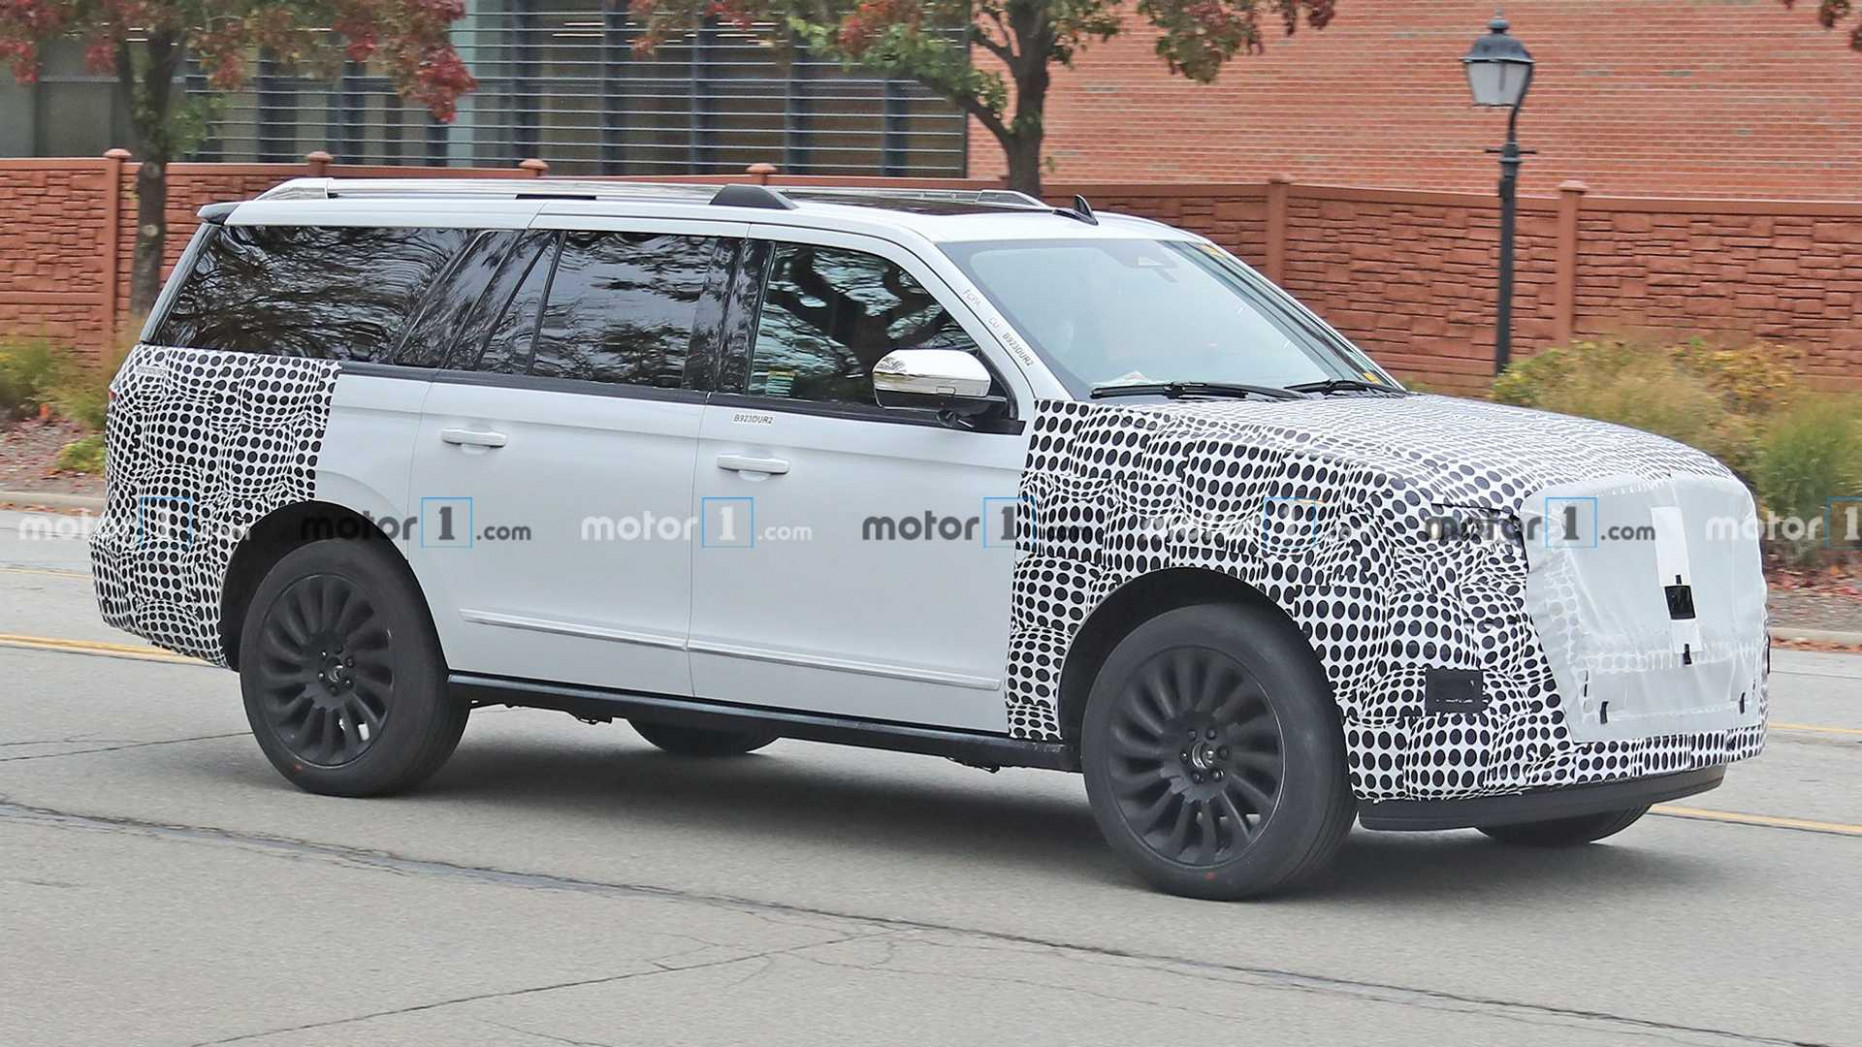 Exterior Ford Lincoln Navigator 2022